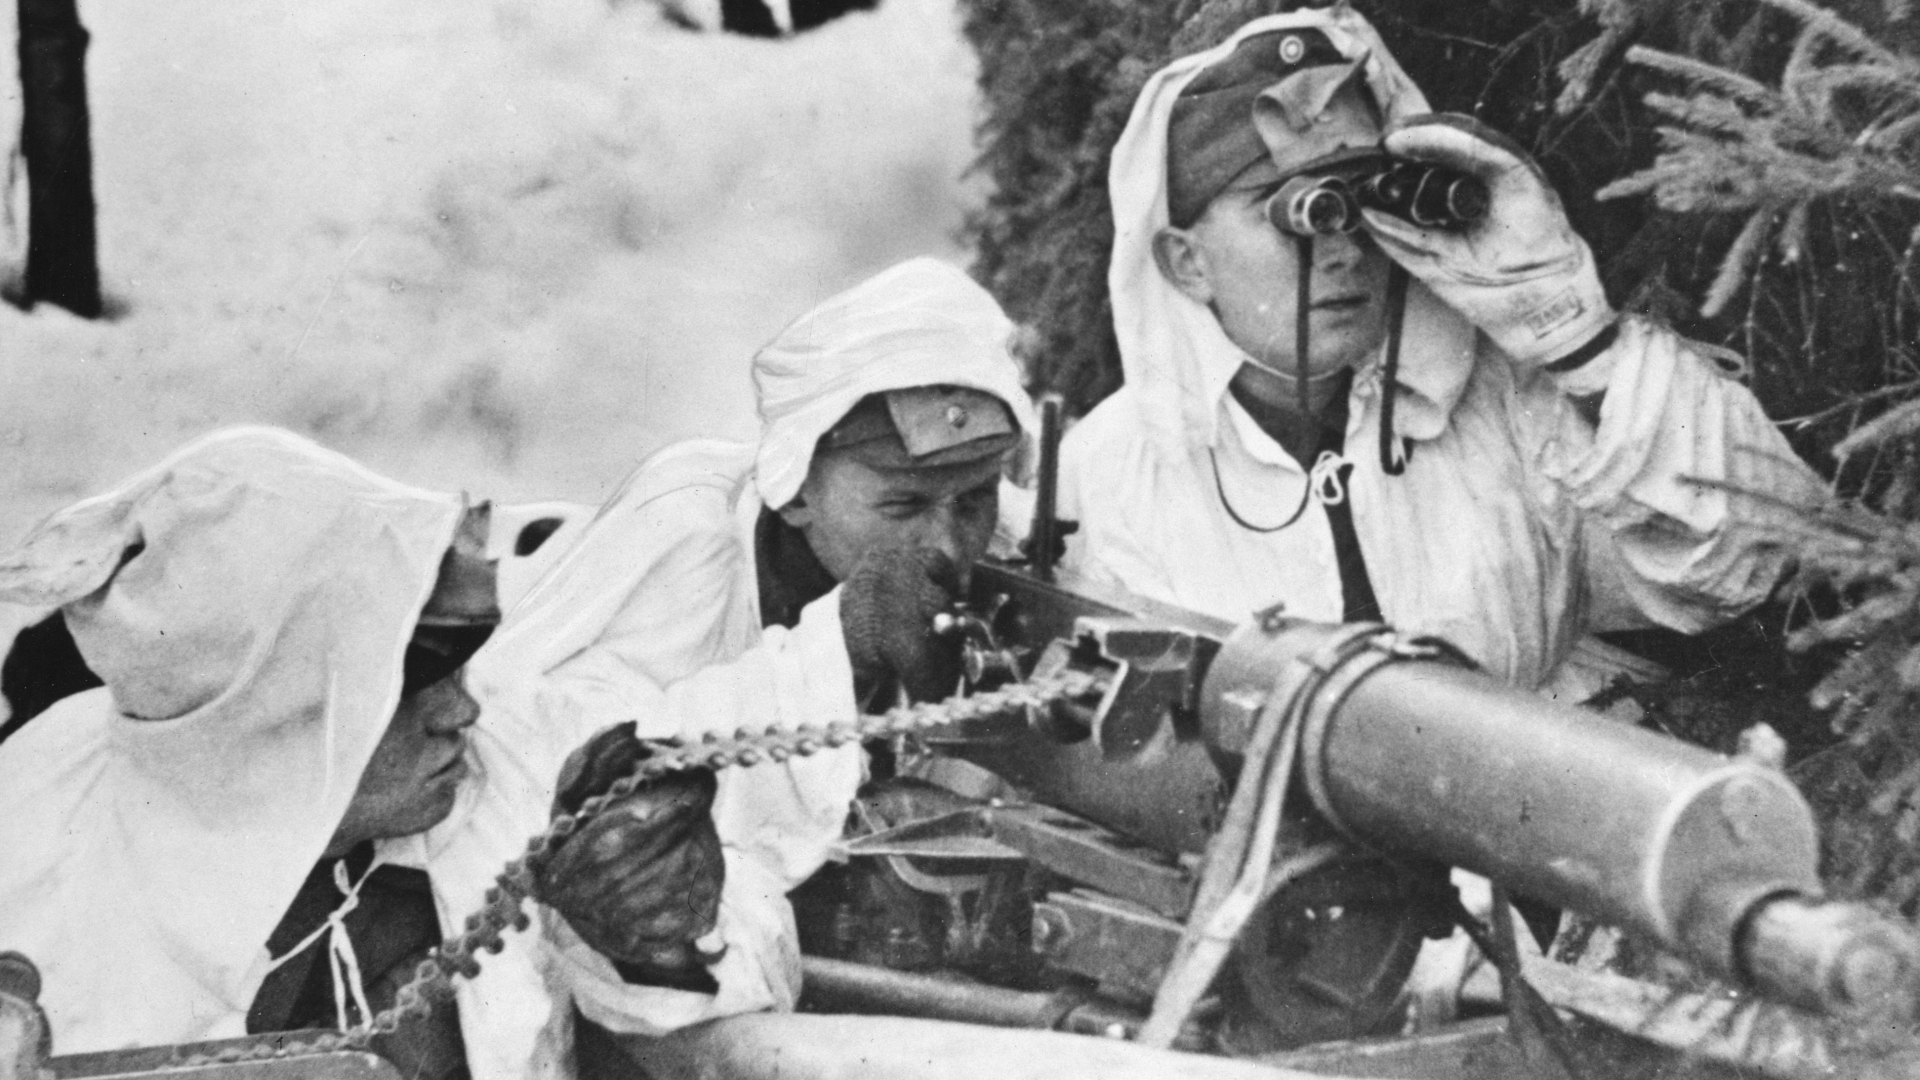 A Finnish machine-gun crew, wearing white to blend with the background of snow, in action against Russian troops during the Winter War. (Credit: Hulton-Deutsch Collection/CORBIS/Corbis via Getty Images)